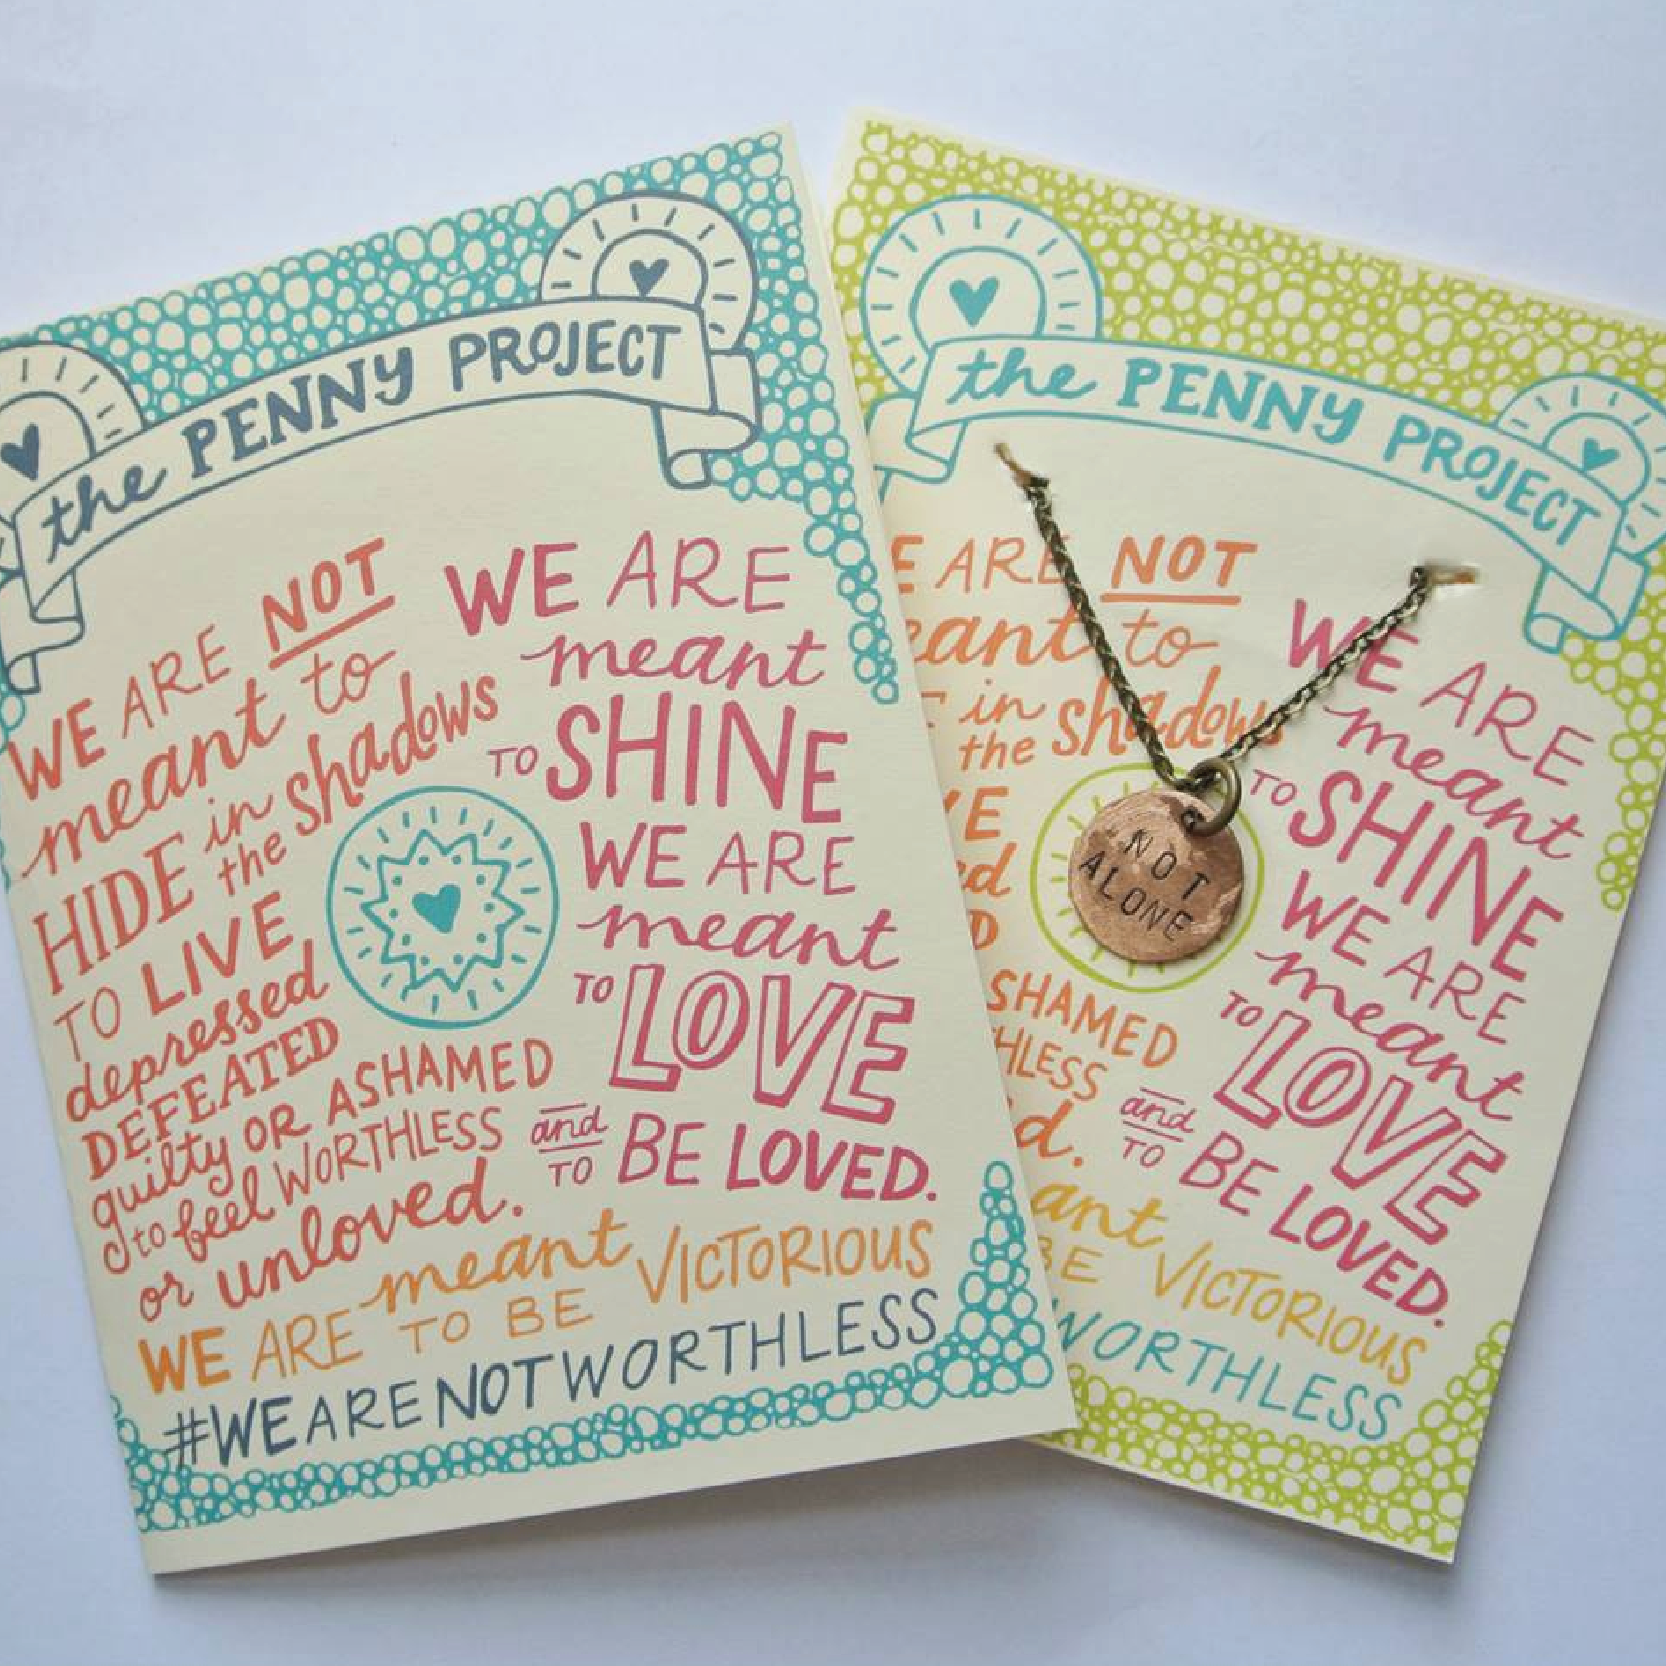 Penny Project Jewelry Packaging for Hey Lola